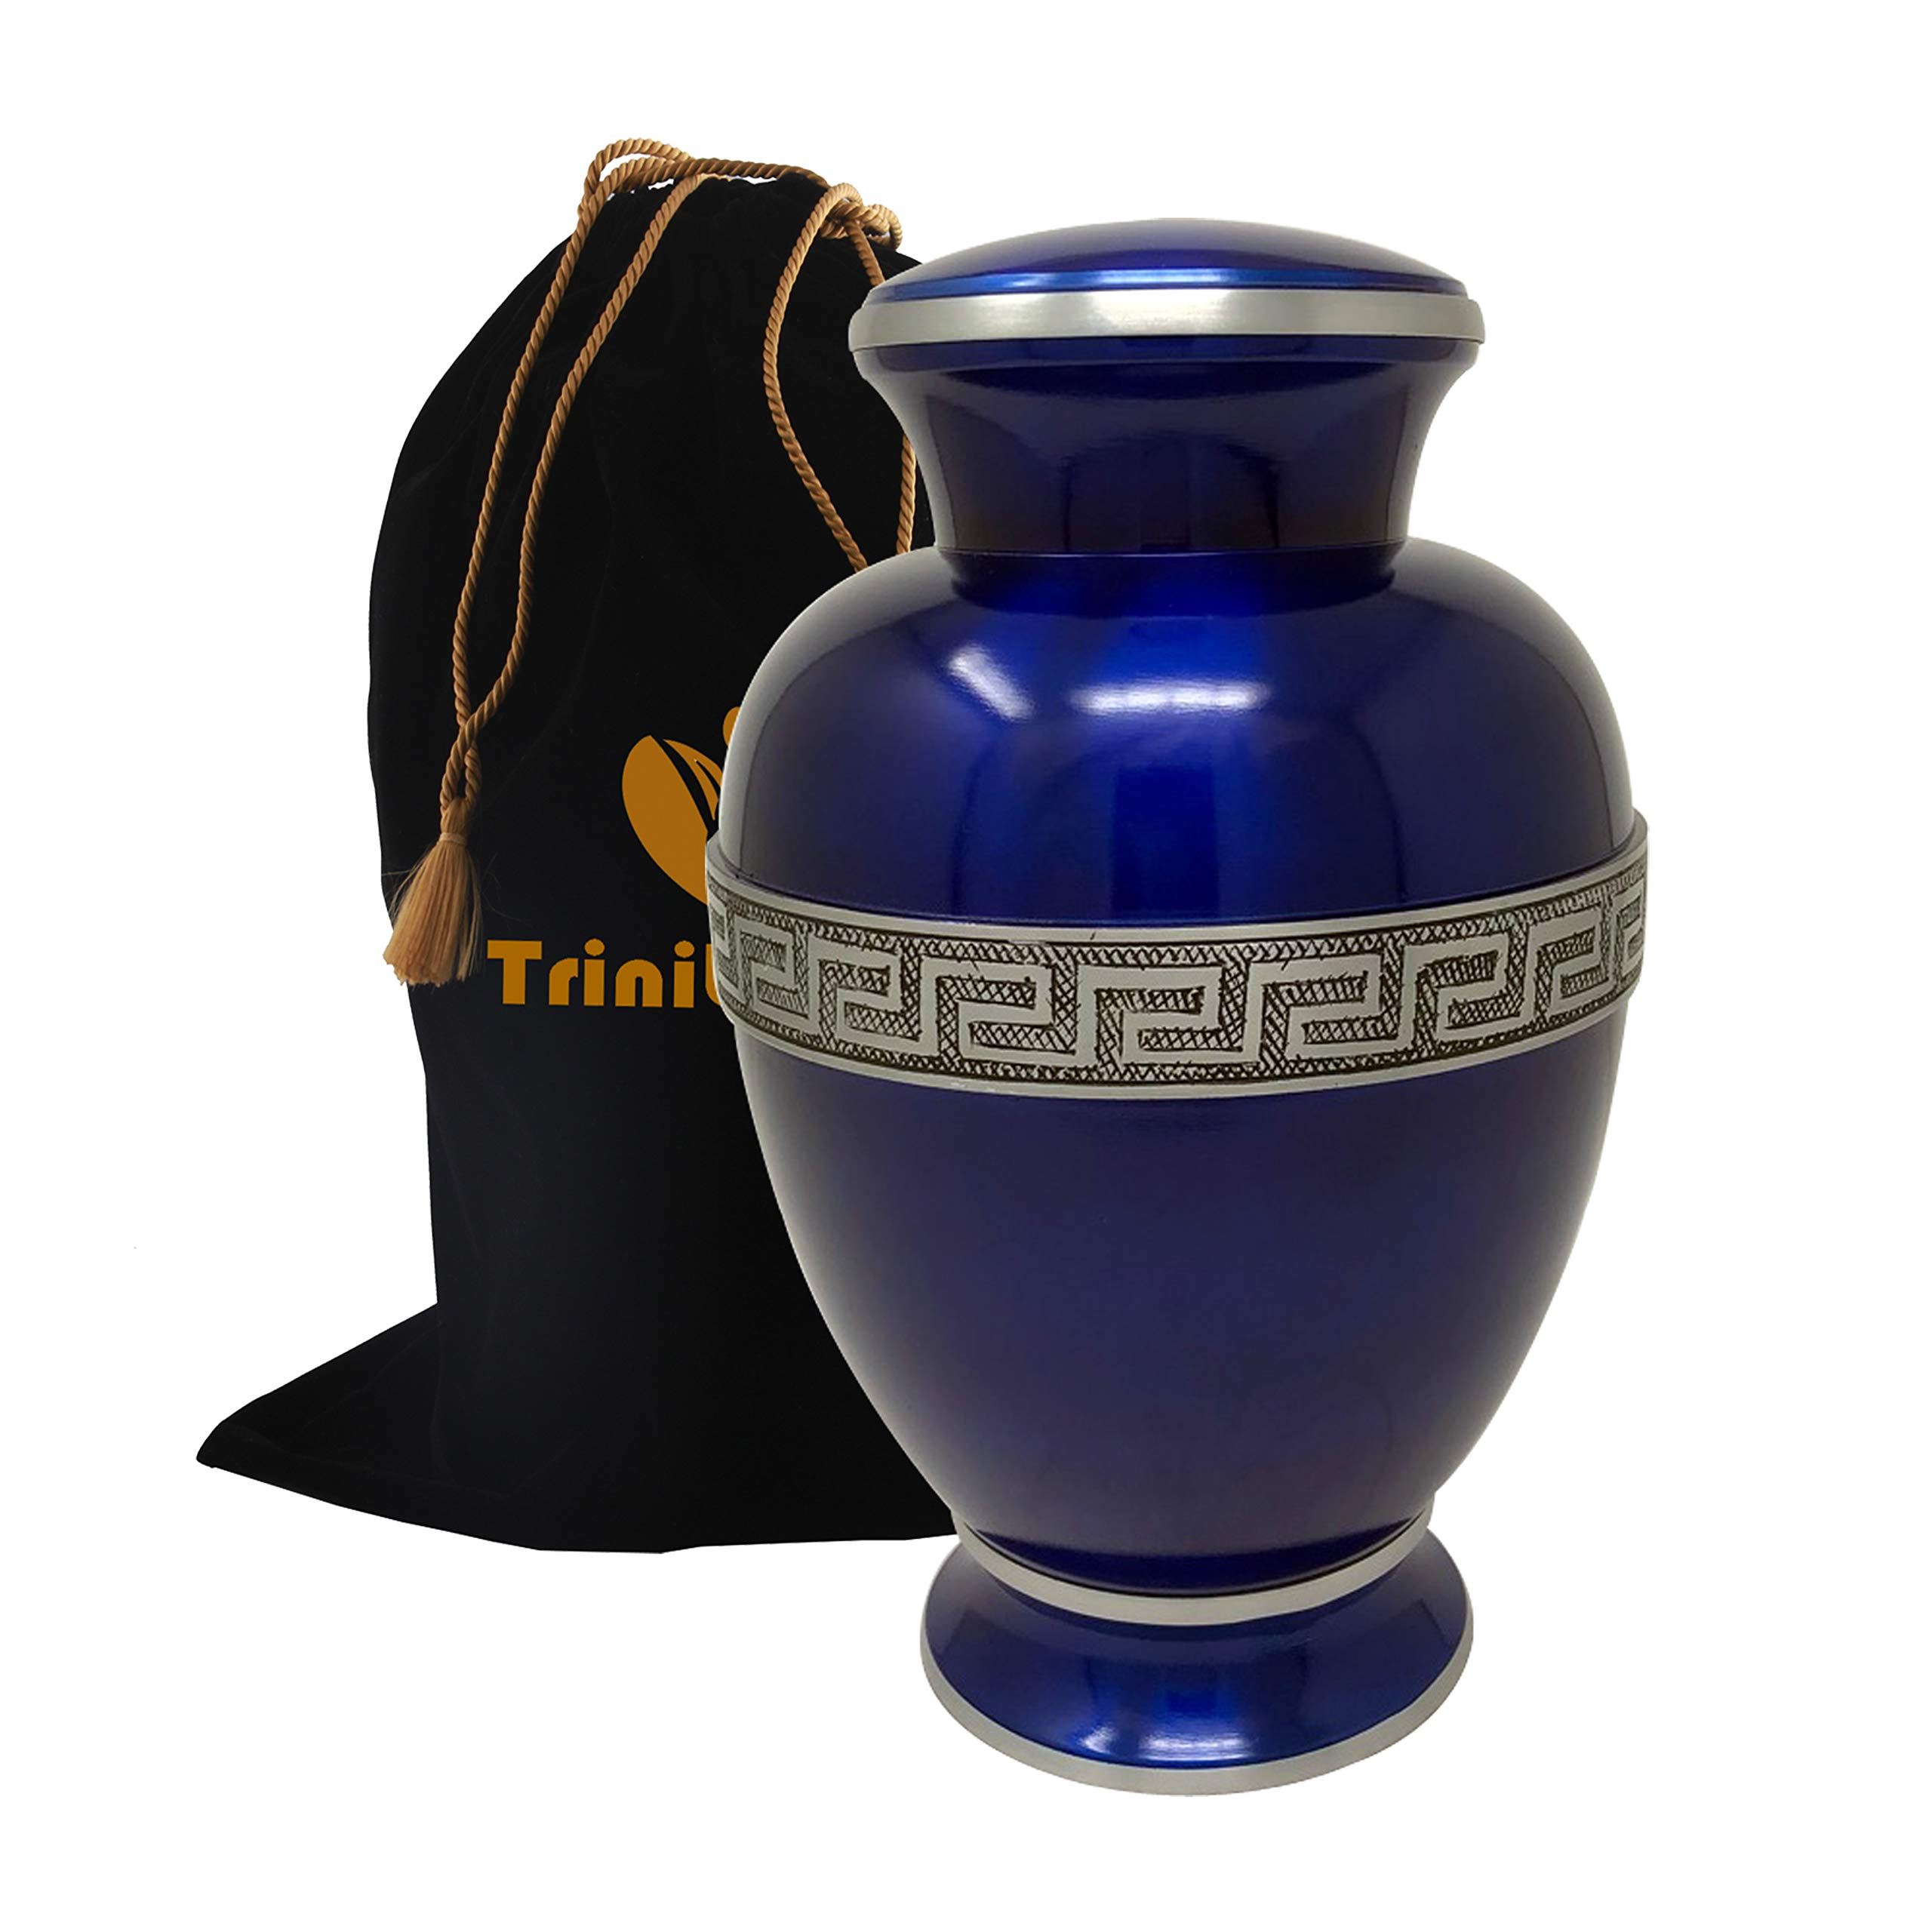 Zeus Sapphire Cremation Urn - Beautifully Handcrafted Adult Funeral Urn - Solid Metal Urn - Affordable Urn for Human Ashes with Free Velvet Bag (Blue)